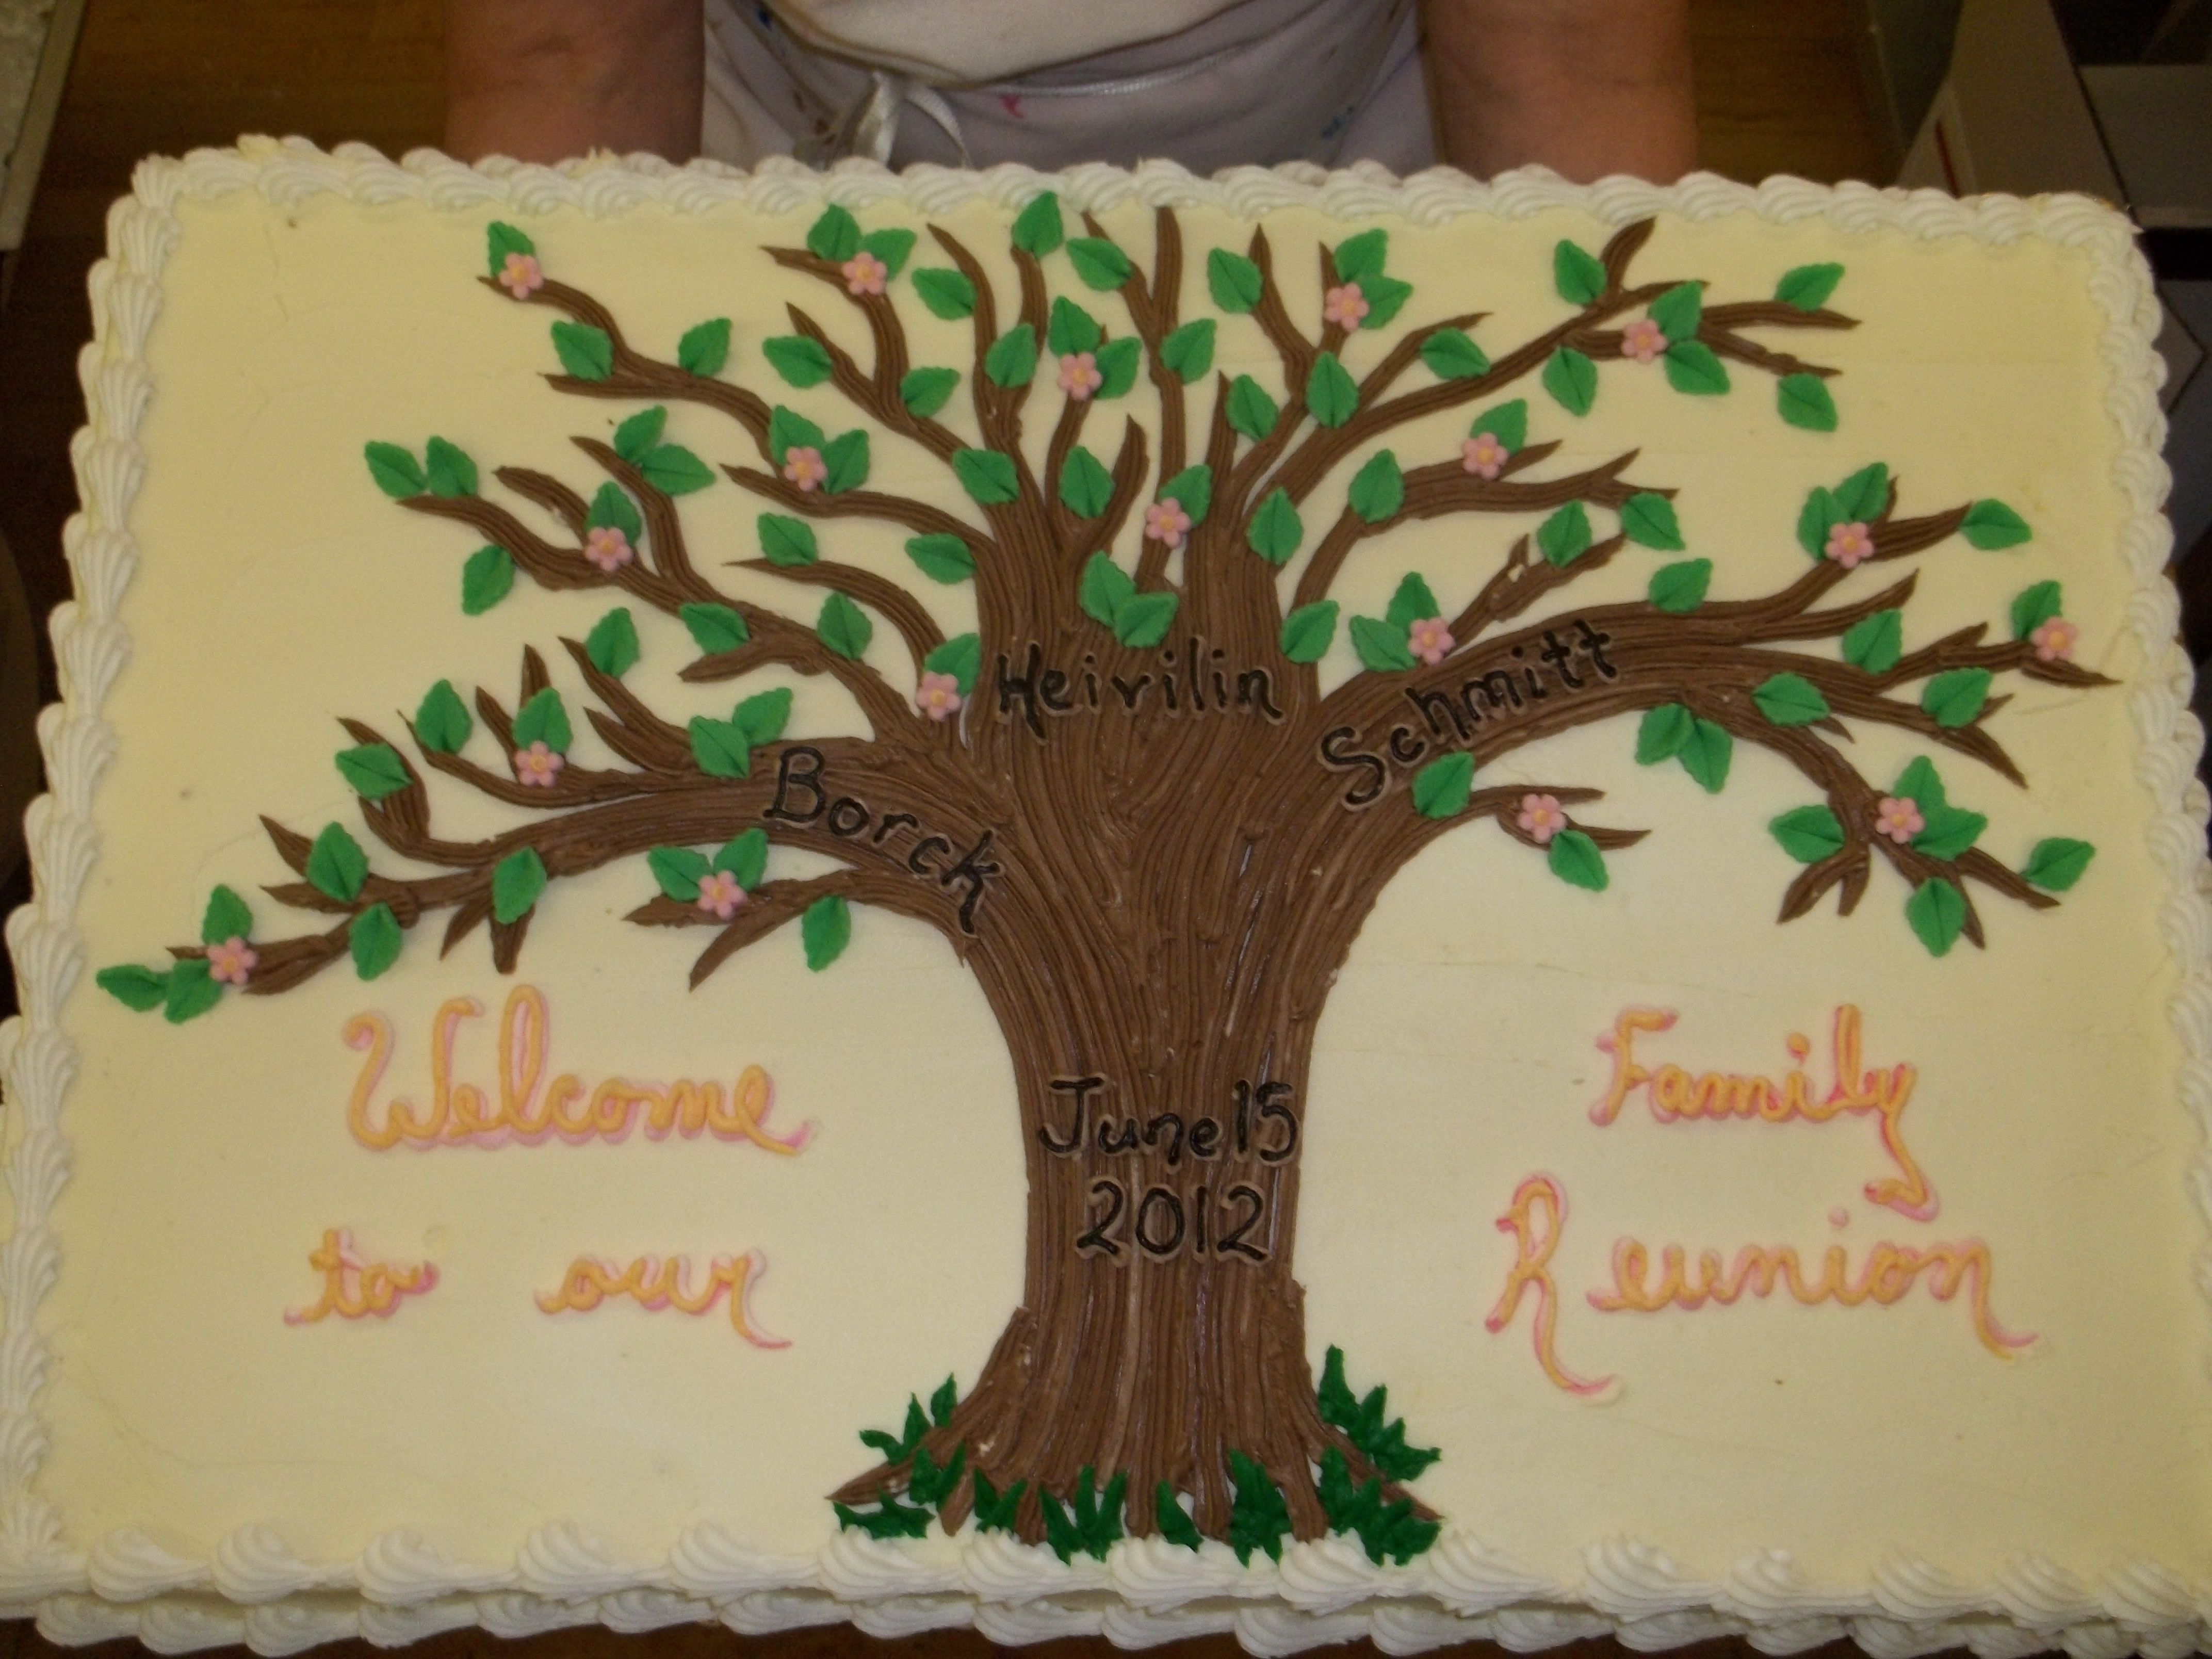 Family Reunion Cake With Images Family Reunion Cakes Family